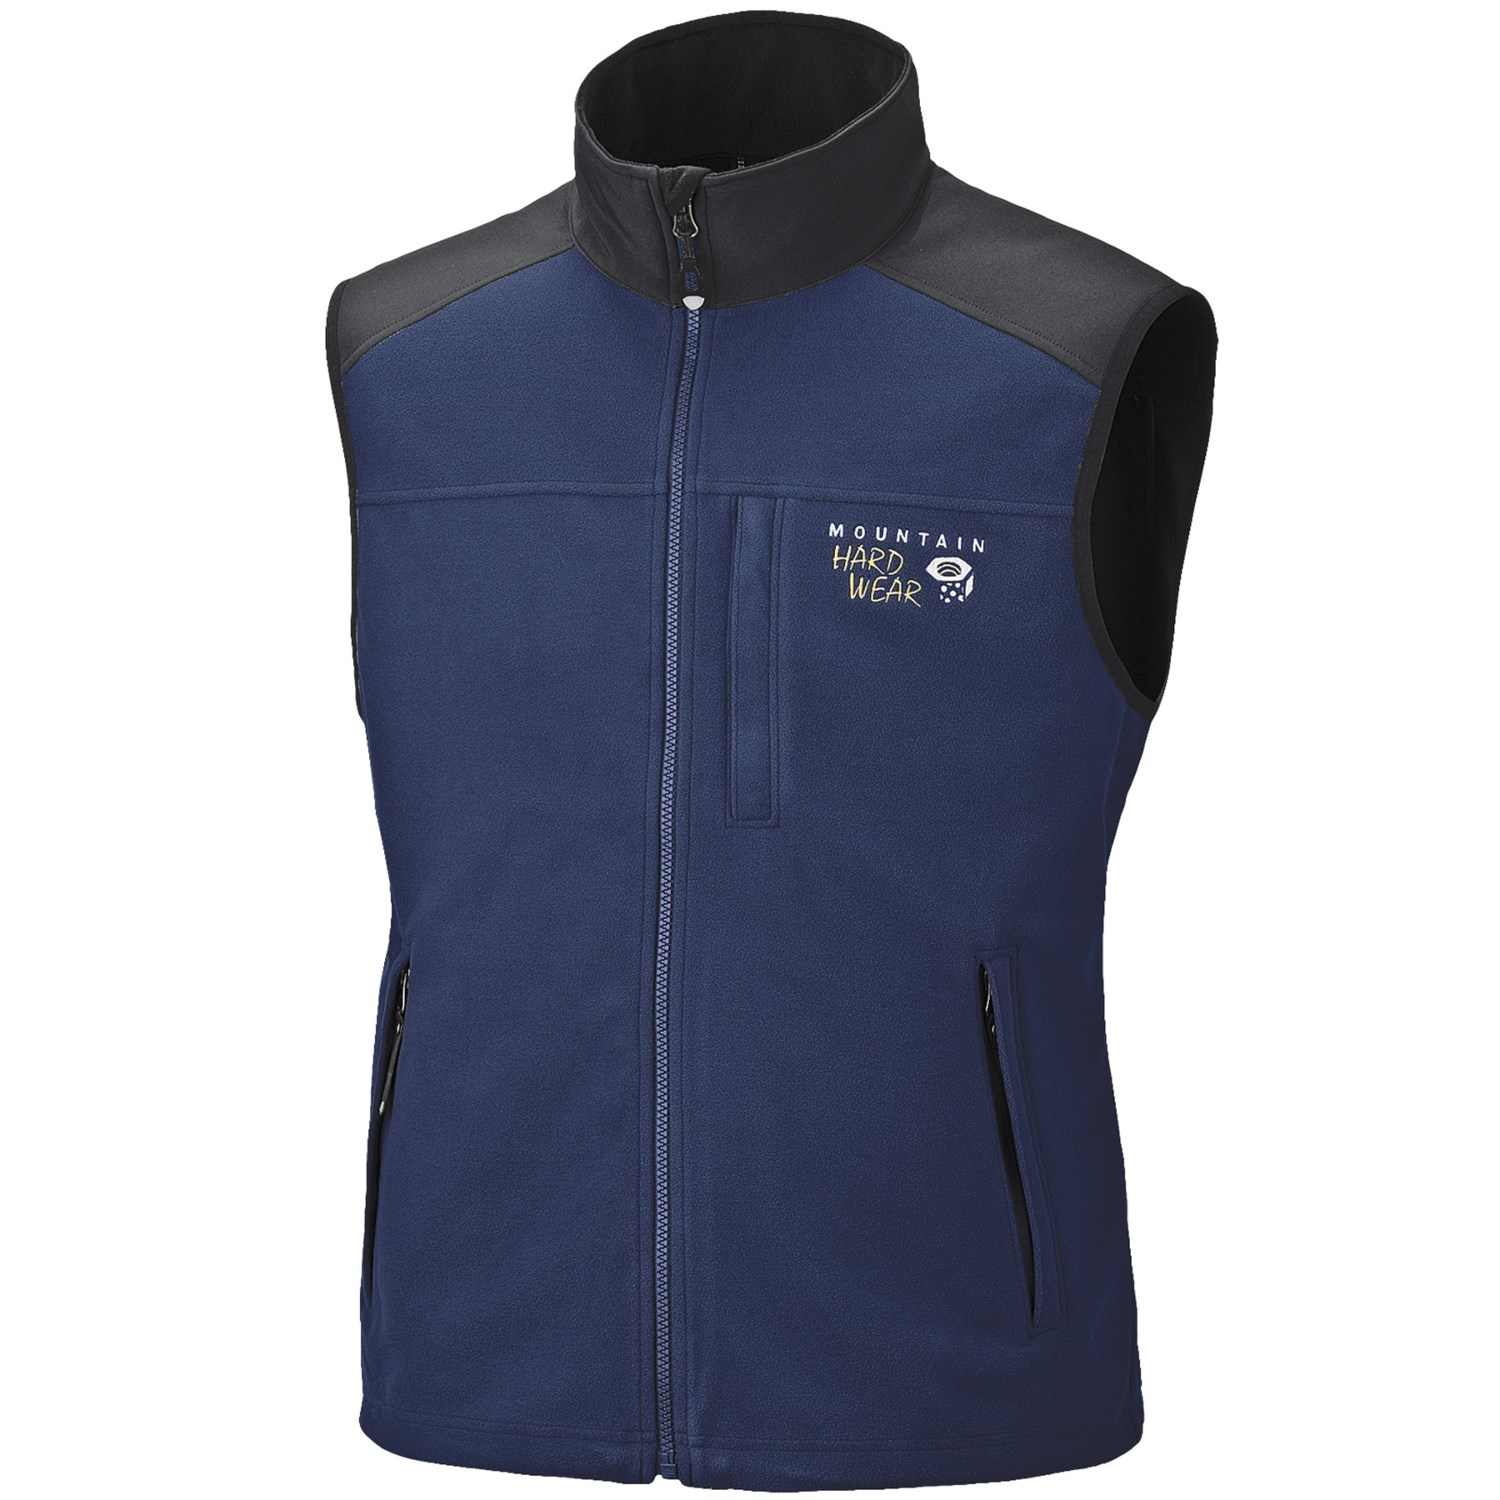 Mountain Hardwear Mountain Tech AirShield Fleece Vest (For Men) 4488X